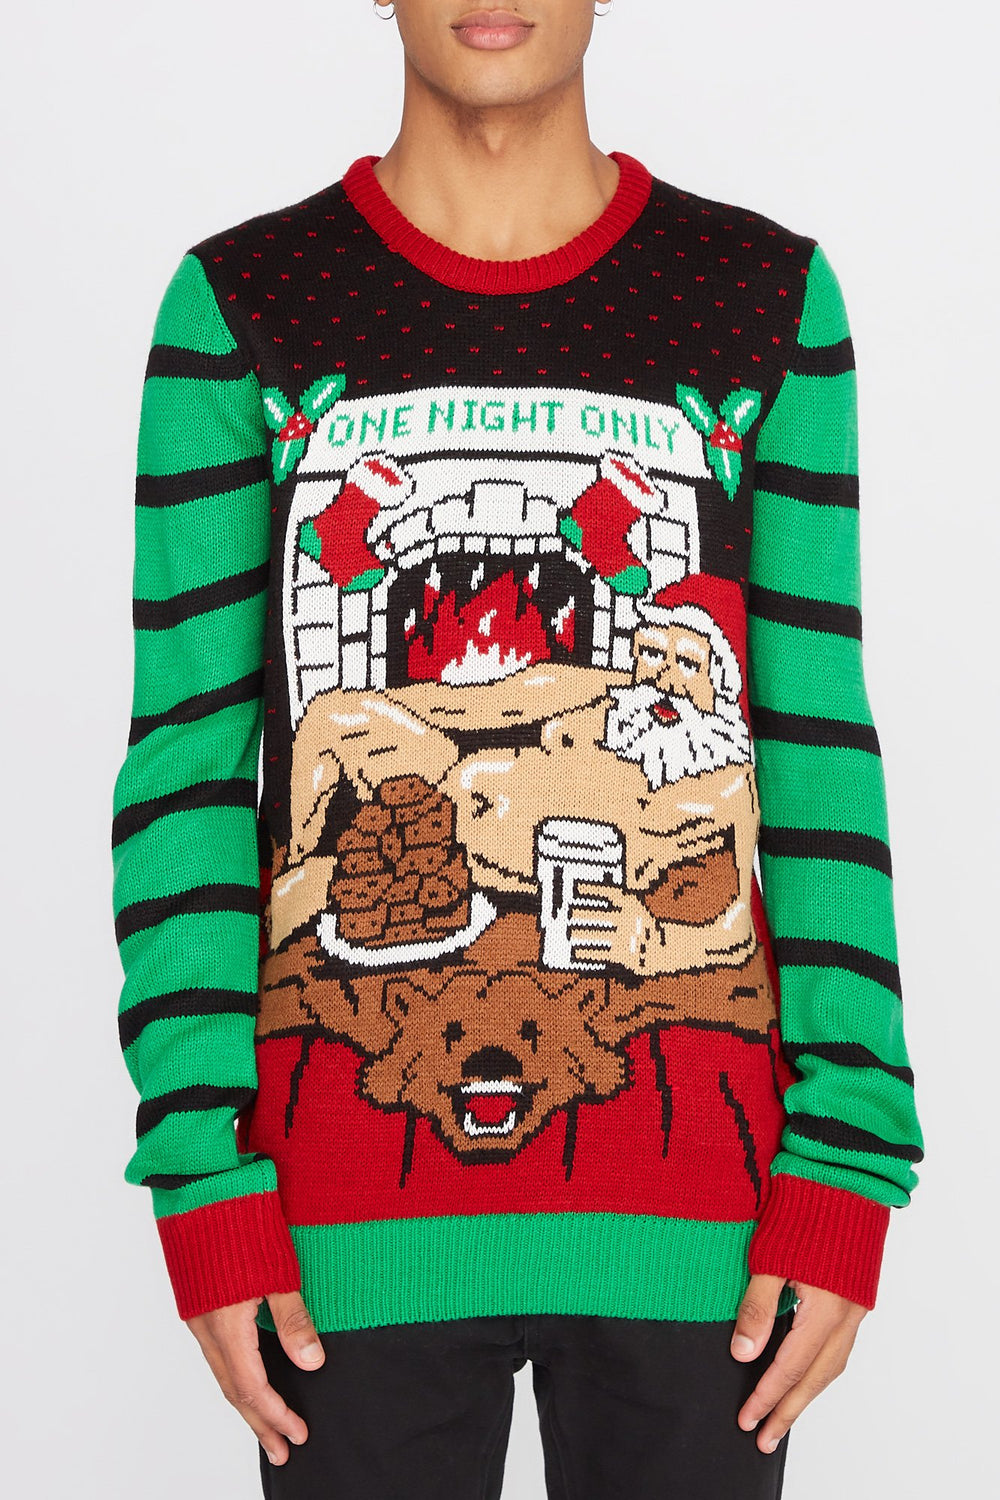 One Night Only Ugly Christmas Sweater Black